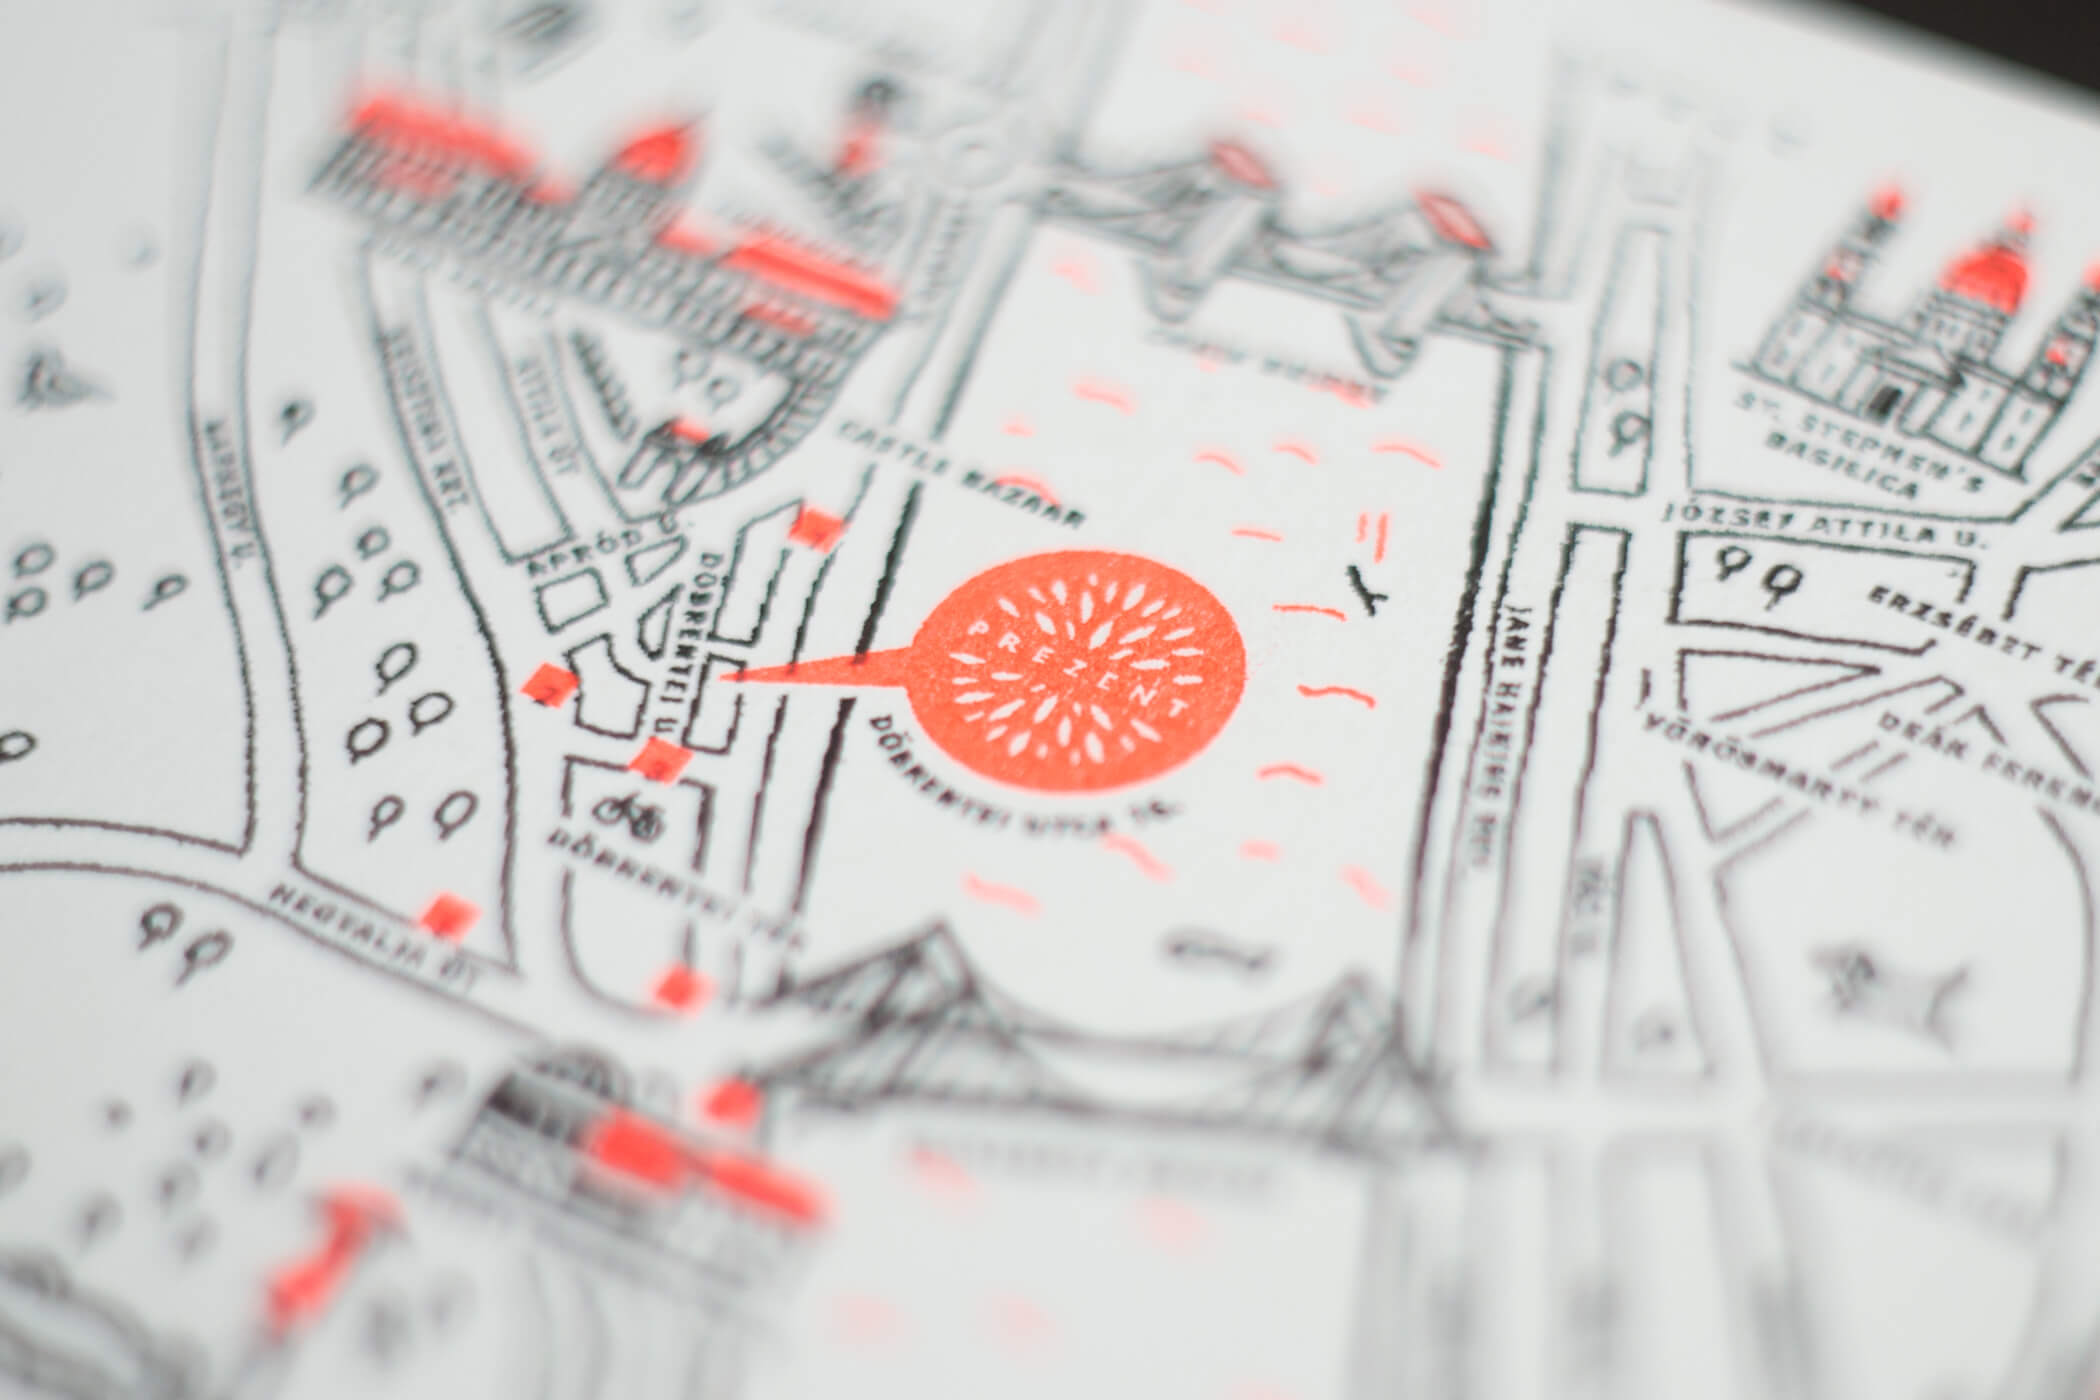 Prezent \ Gift shop illustrated tourist map